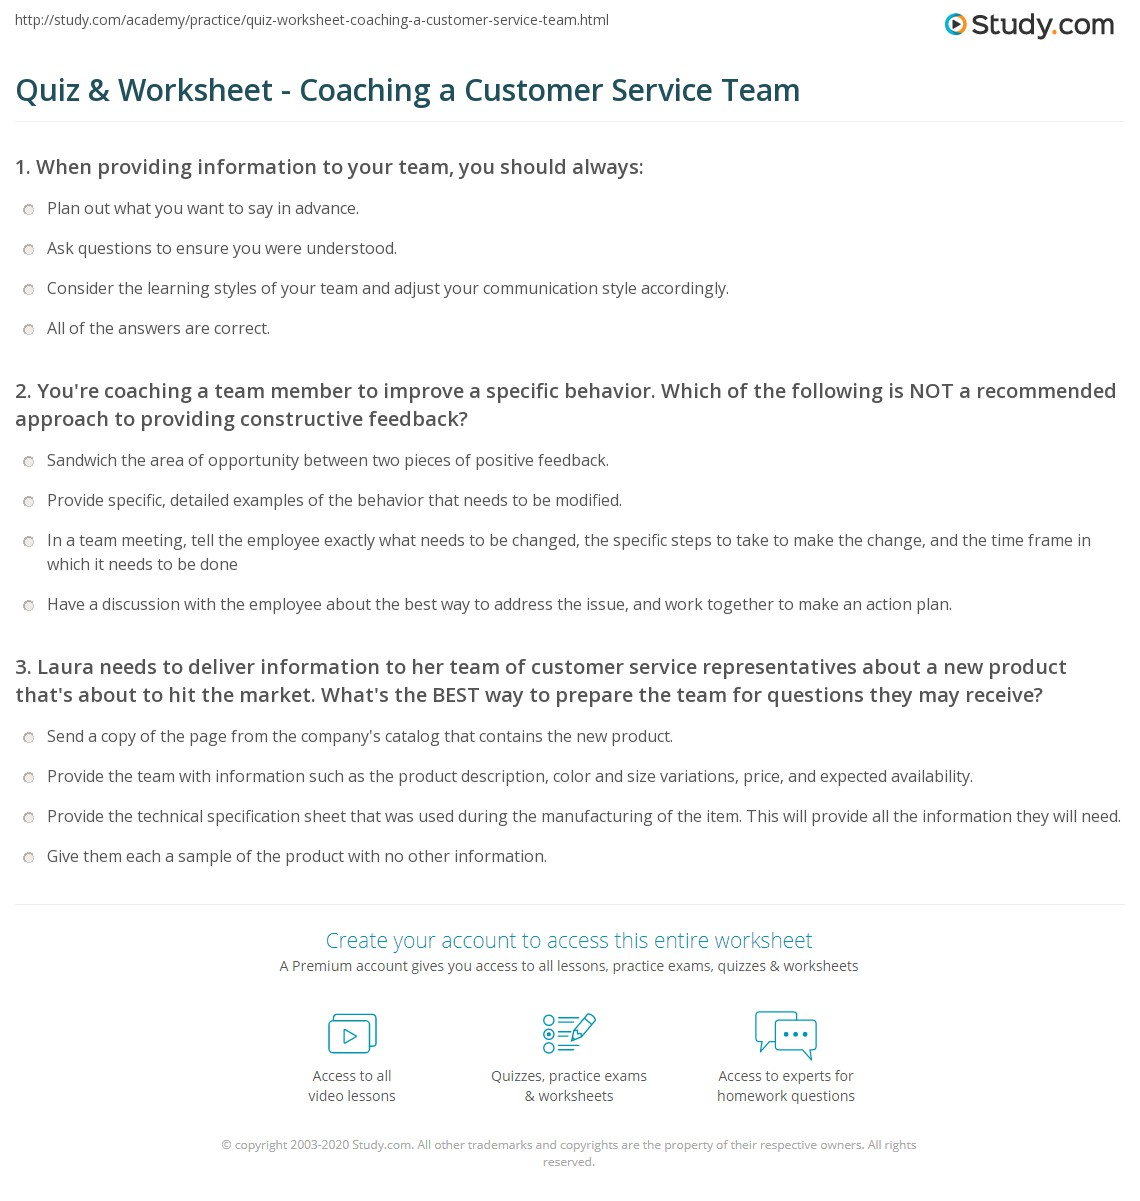 quiz worksheet coaching a customer service team. Black Bedroom Furniture Sets. Home Design Ideas